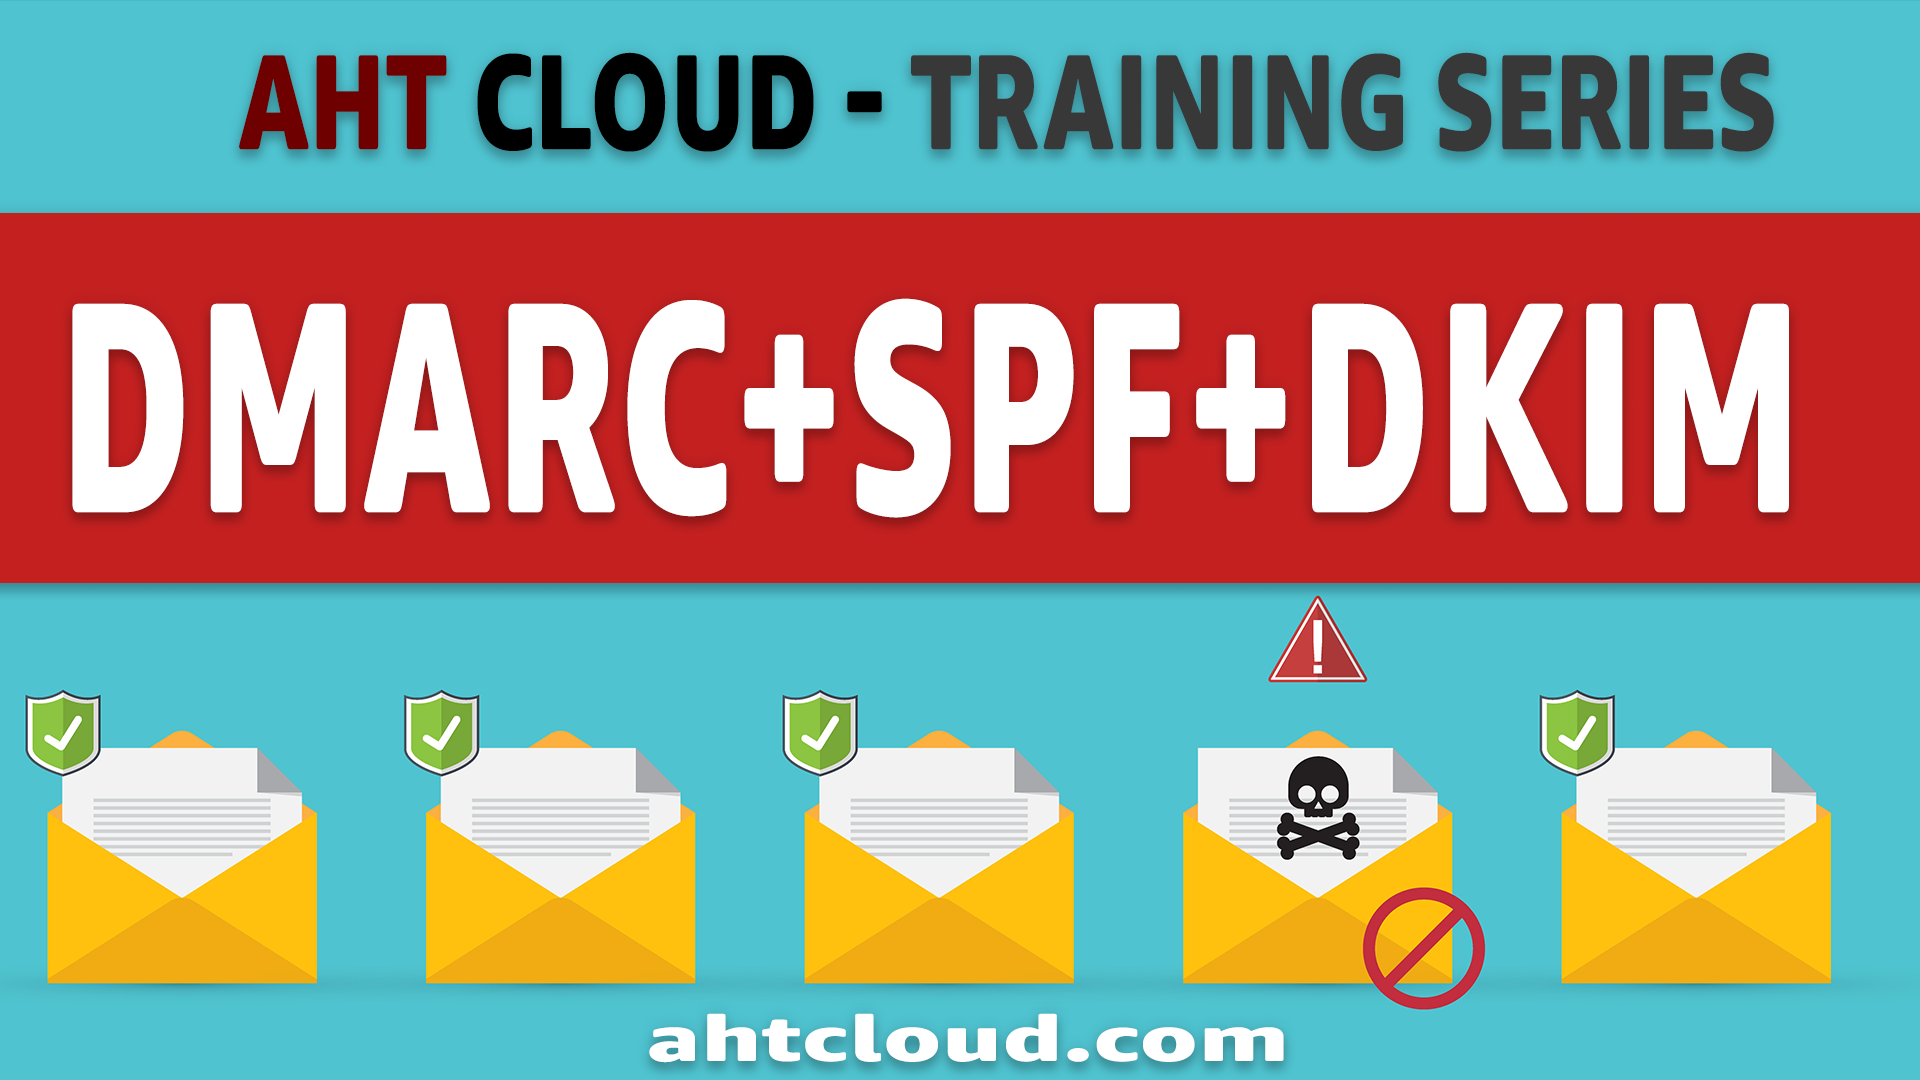 DMARC SPF DKIM Course By Emad Zaamout